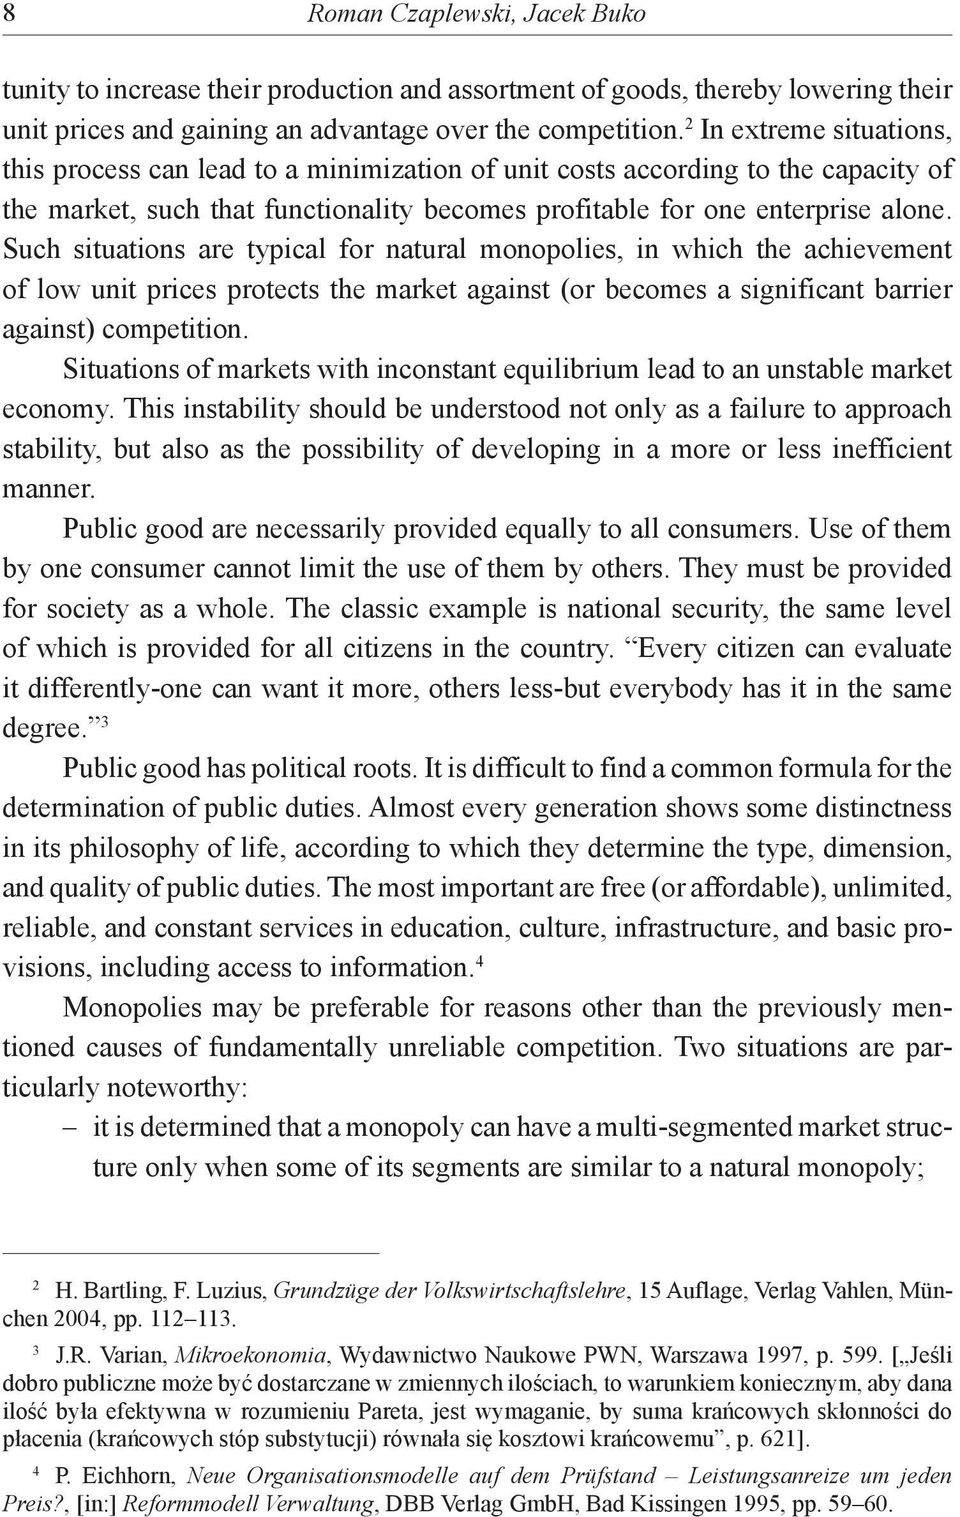 Such situations are typical for natural monopolies, in which the achievement of low unit prices protects the market against (or becomes a significant barrier against) competition.